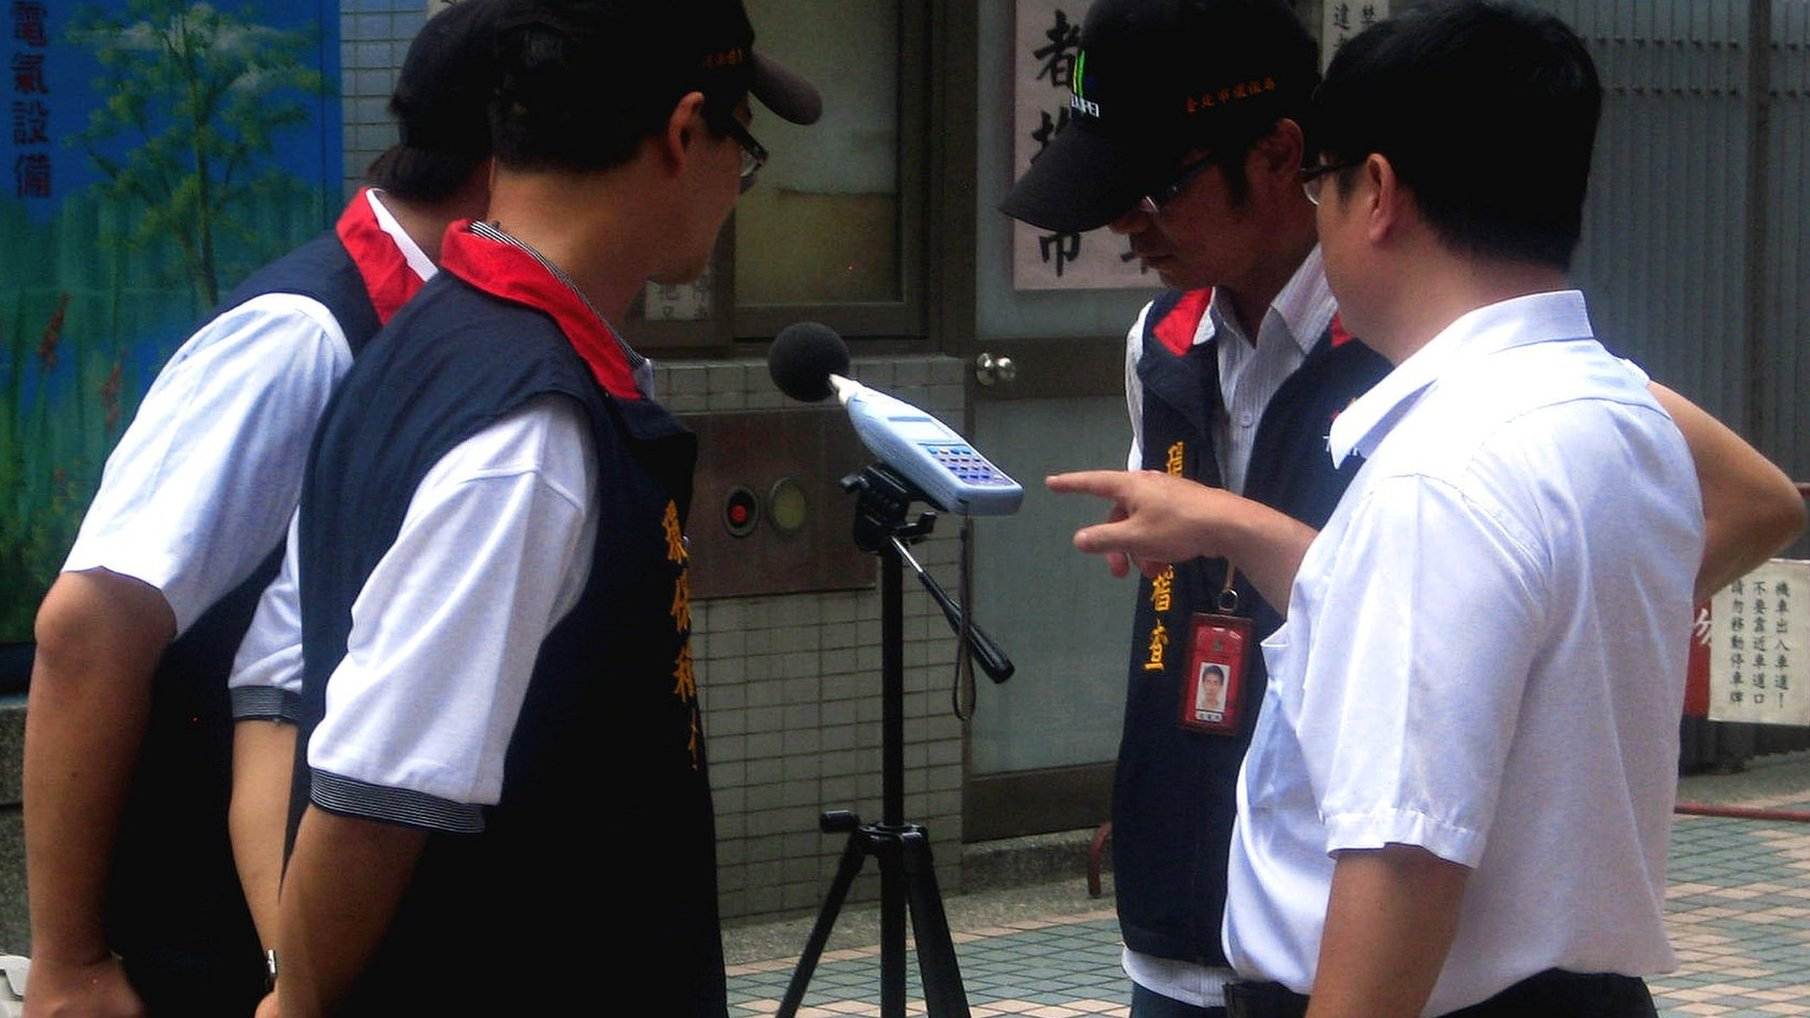 Inspectors from Taipei&#039;s Department of Environmental Protection read a sound level meter in Taipei, Taiwan, 16 July 2012